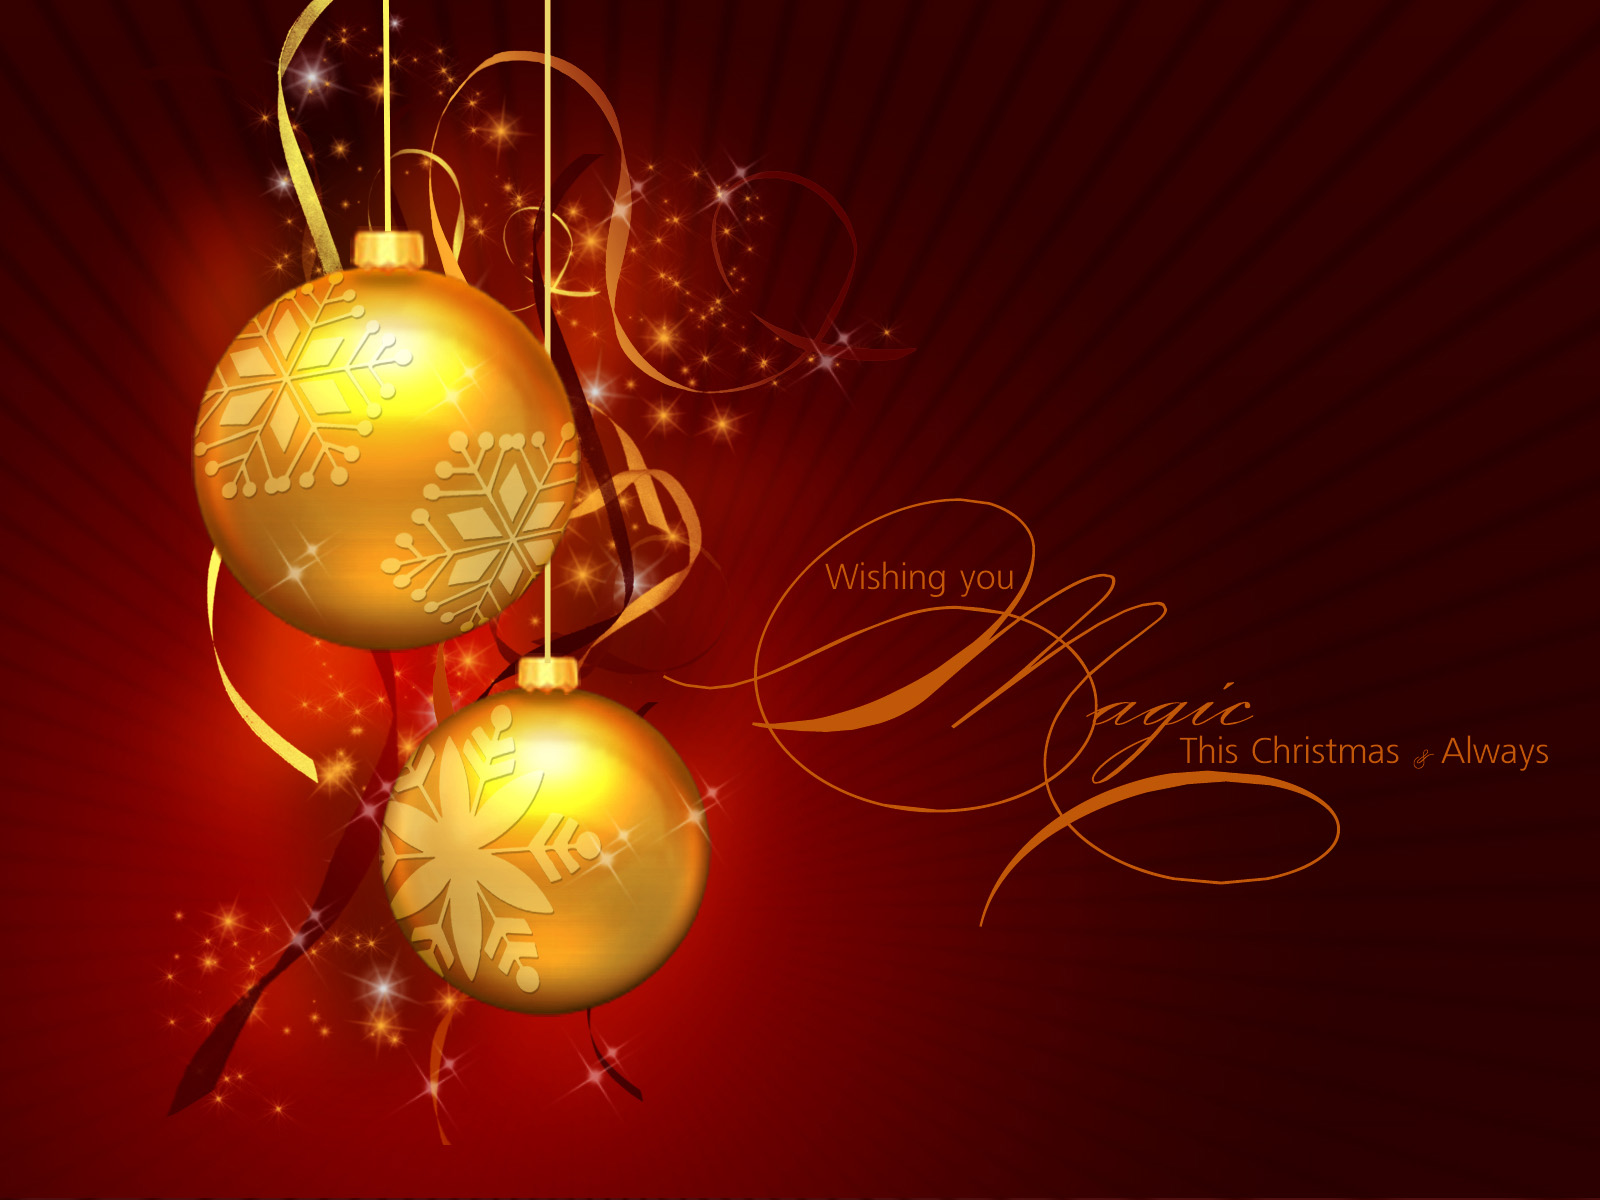 free christmas wallpaper backgrounds,free christmas wallpaper downloads